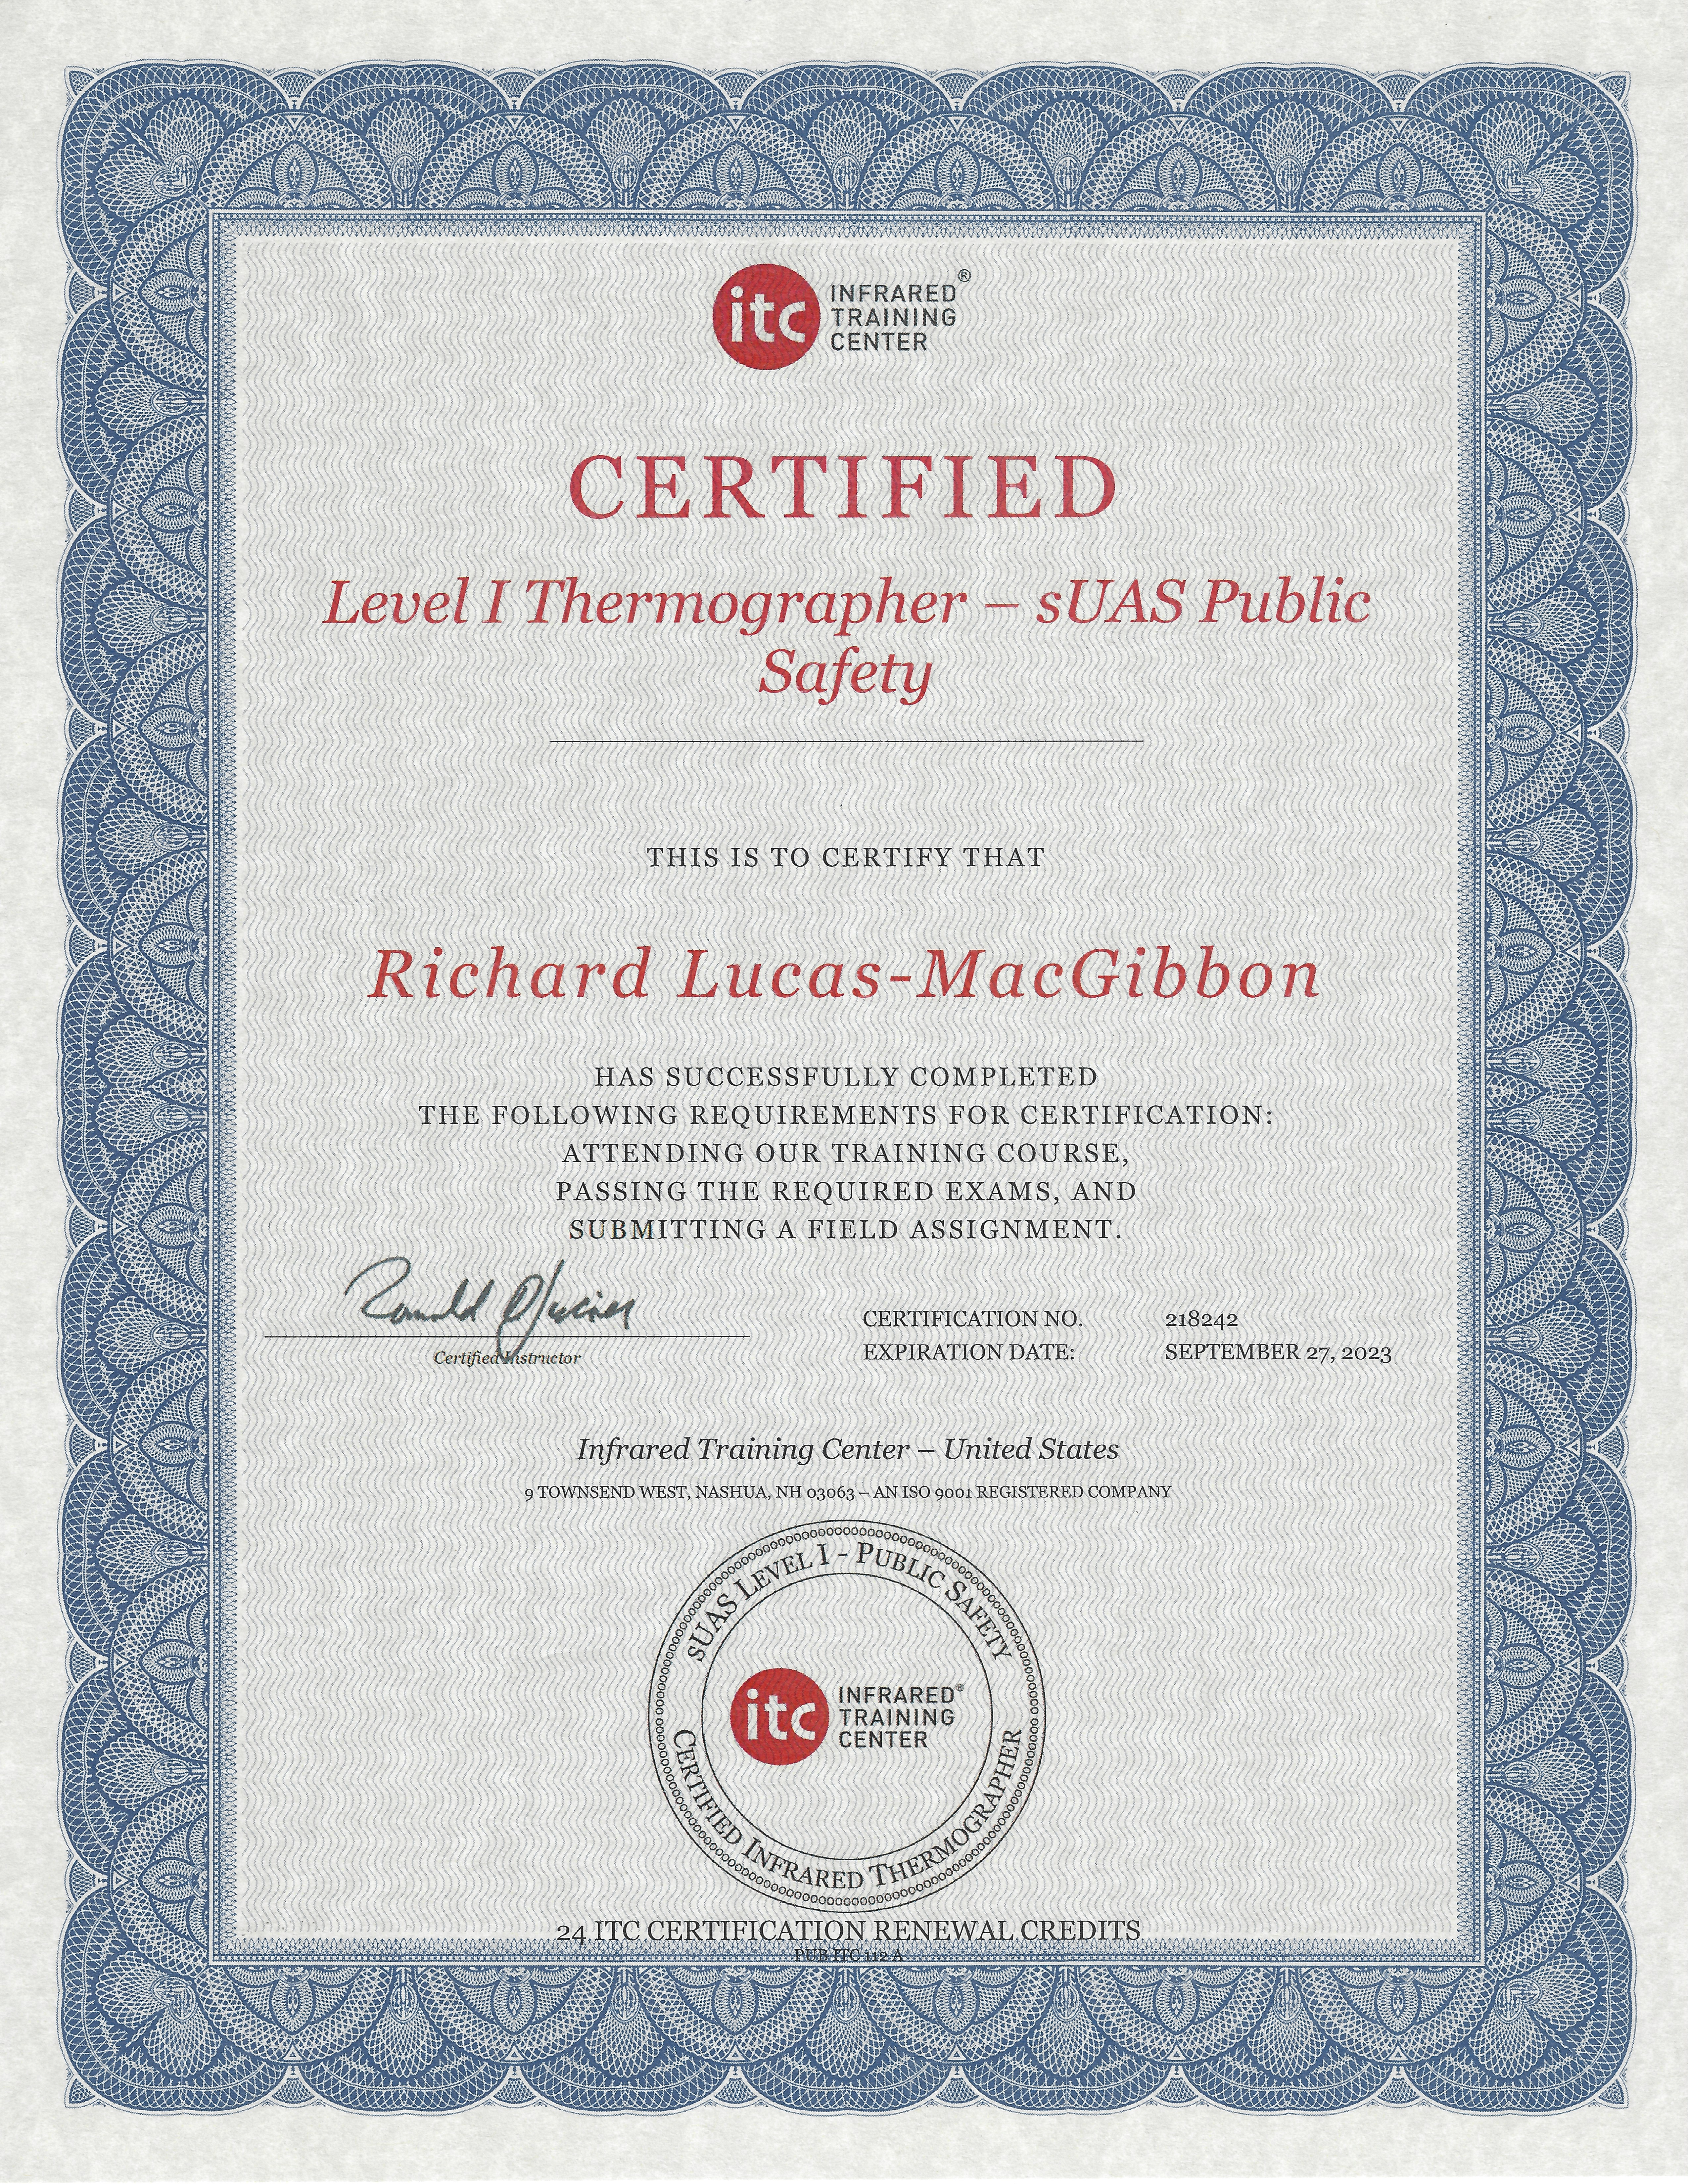 FRUO Chief Pilot Receives sUAS Level 1 Thermographer - Public Safety Certification